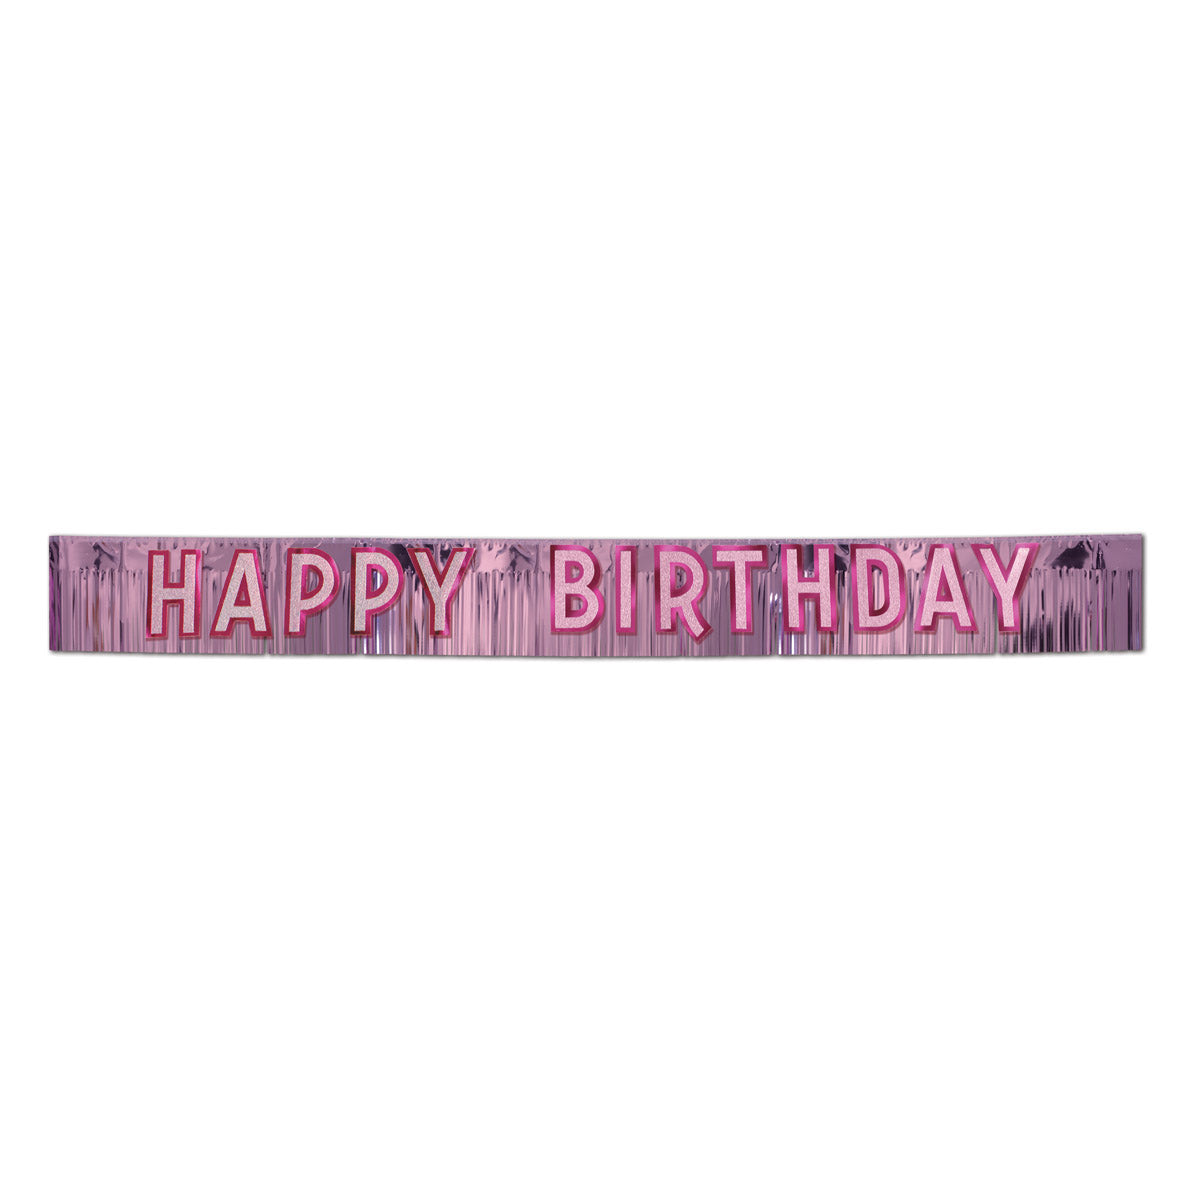 Metallic Happy Birthday Banner, pink w/silver by Beistle - Birthday Party Supplies Decorations